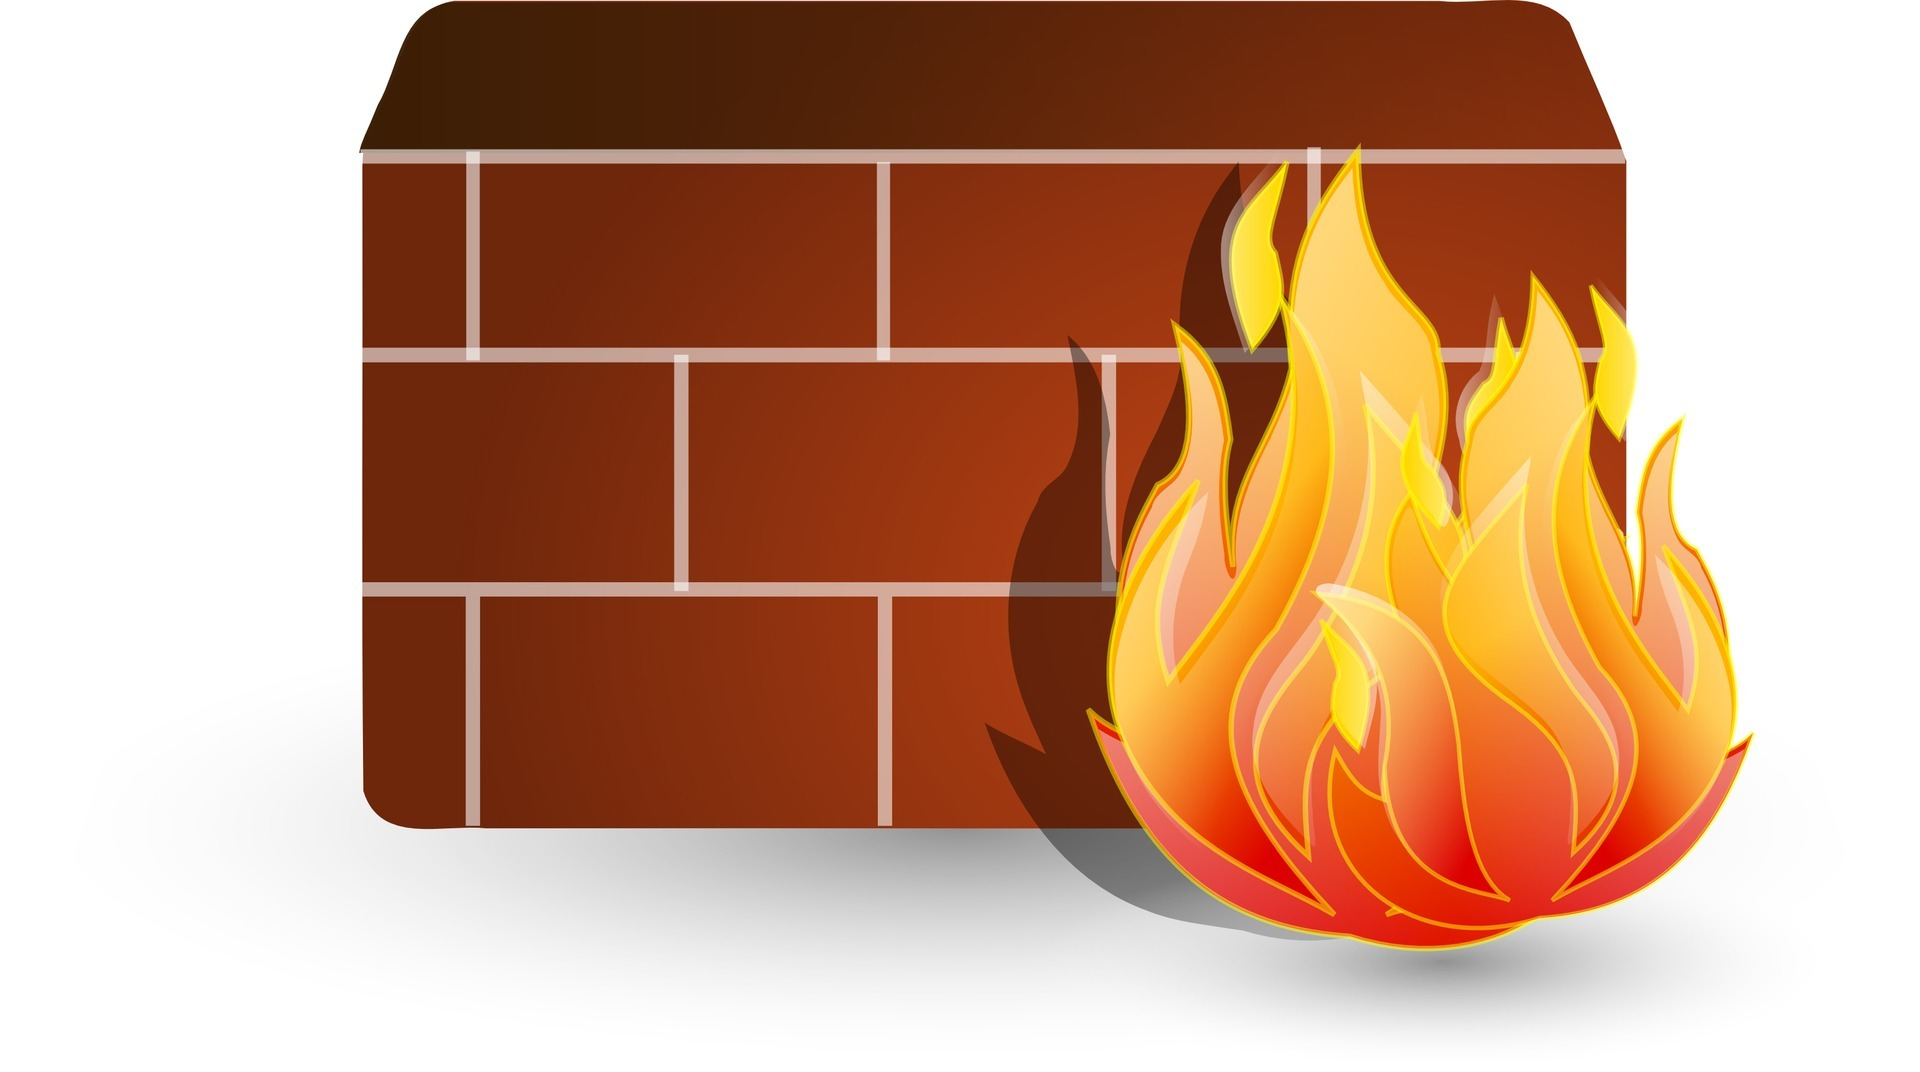 Free Firewall Clipart Illustrations at http://free.ClipartOf.com